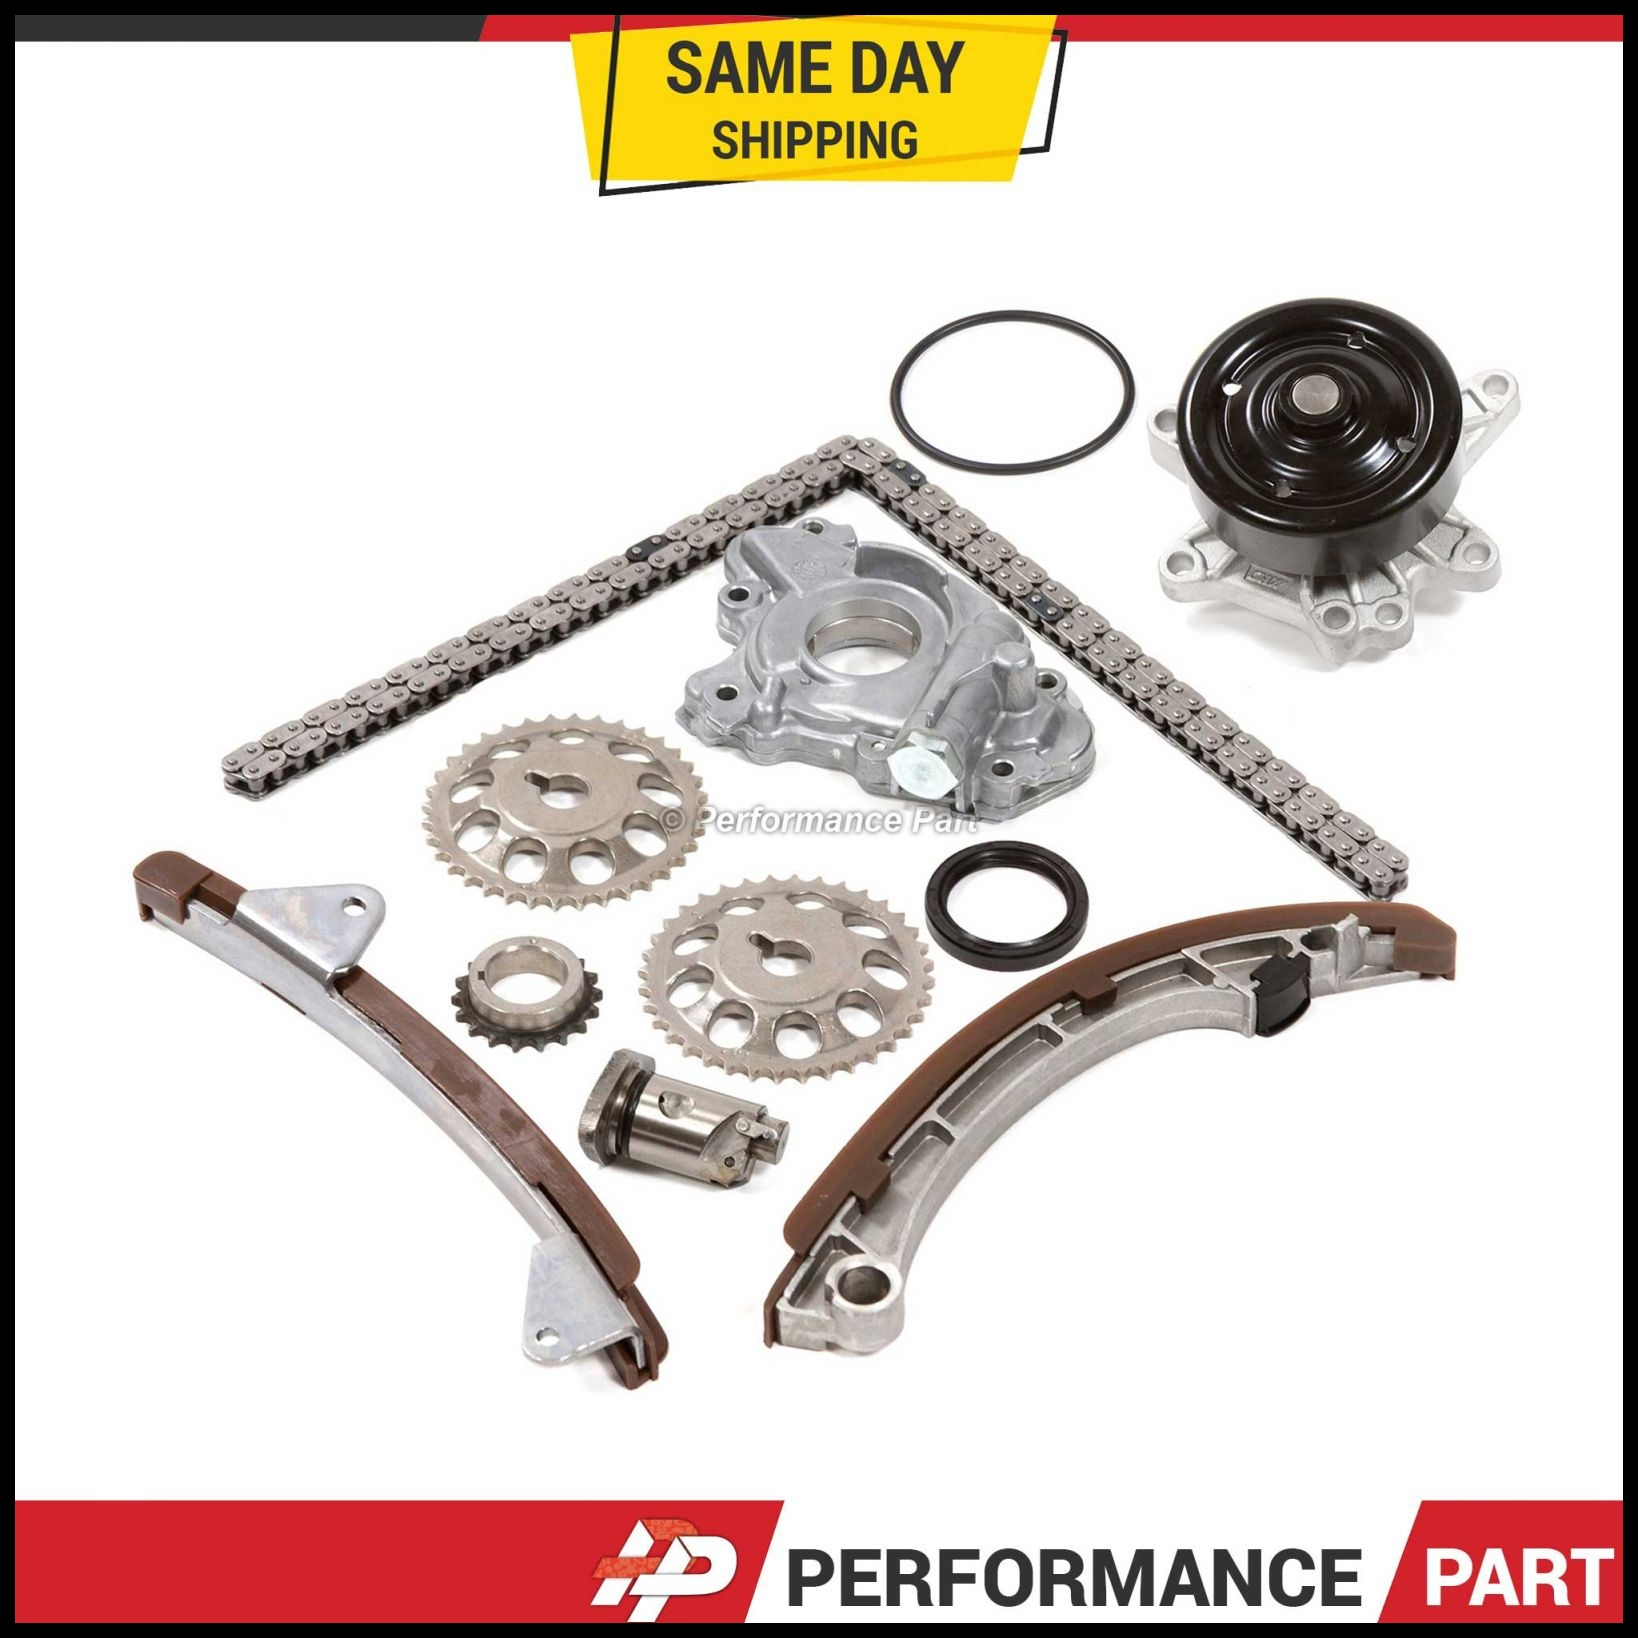 2009 toyota Camry Water Pump Replacement Fresh 2009 toyota Corolla Parts Diagram Lp01 Documentaries for Change